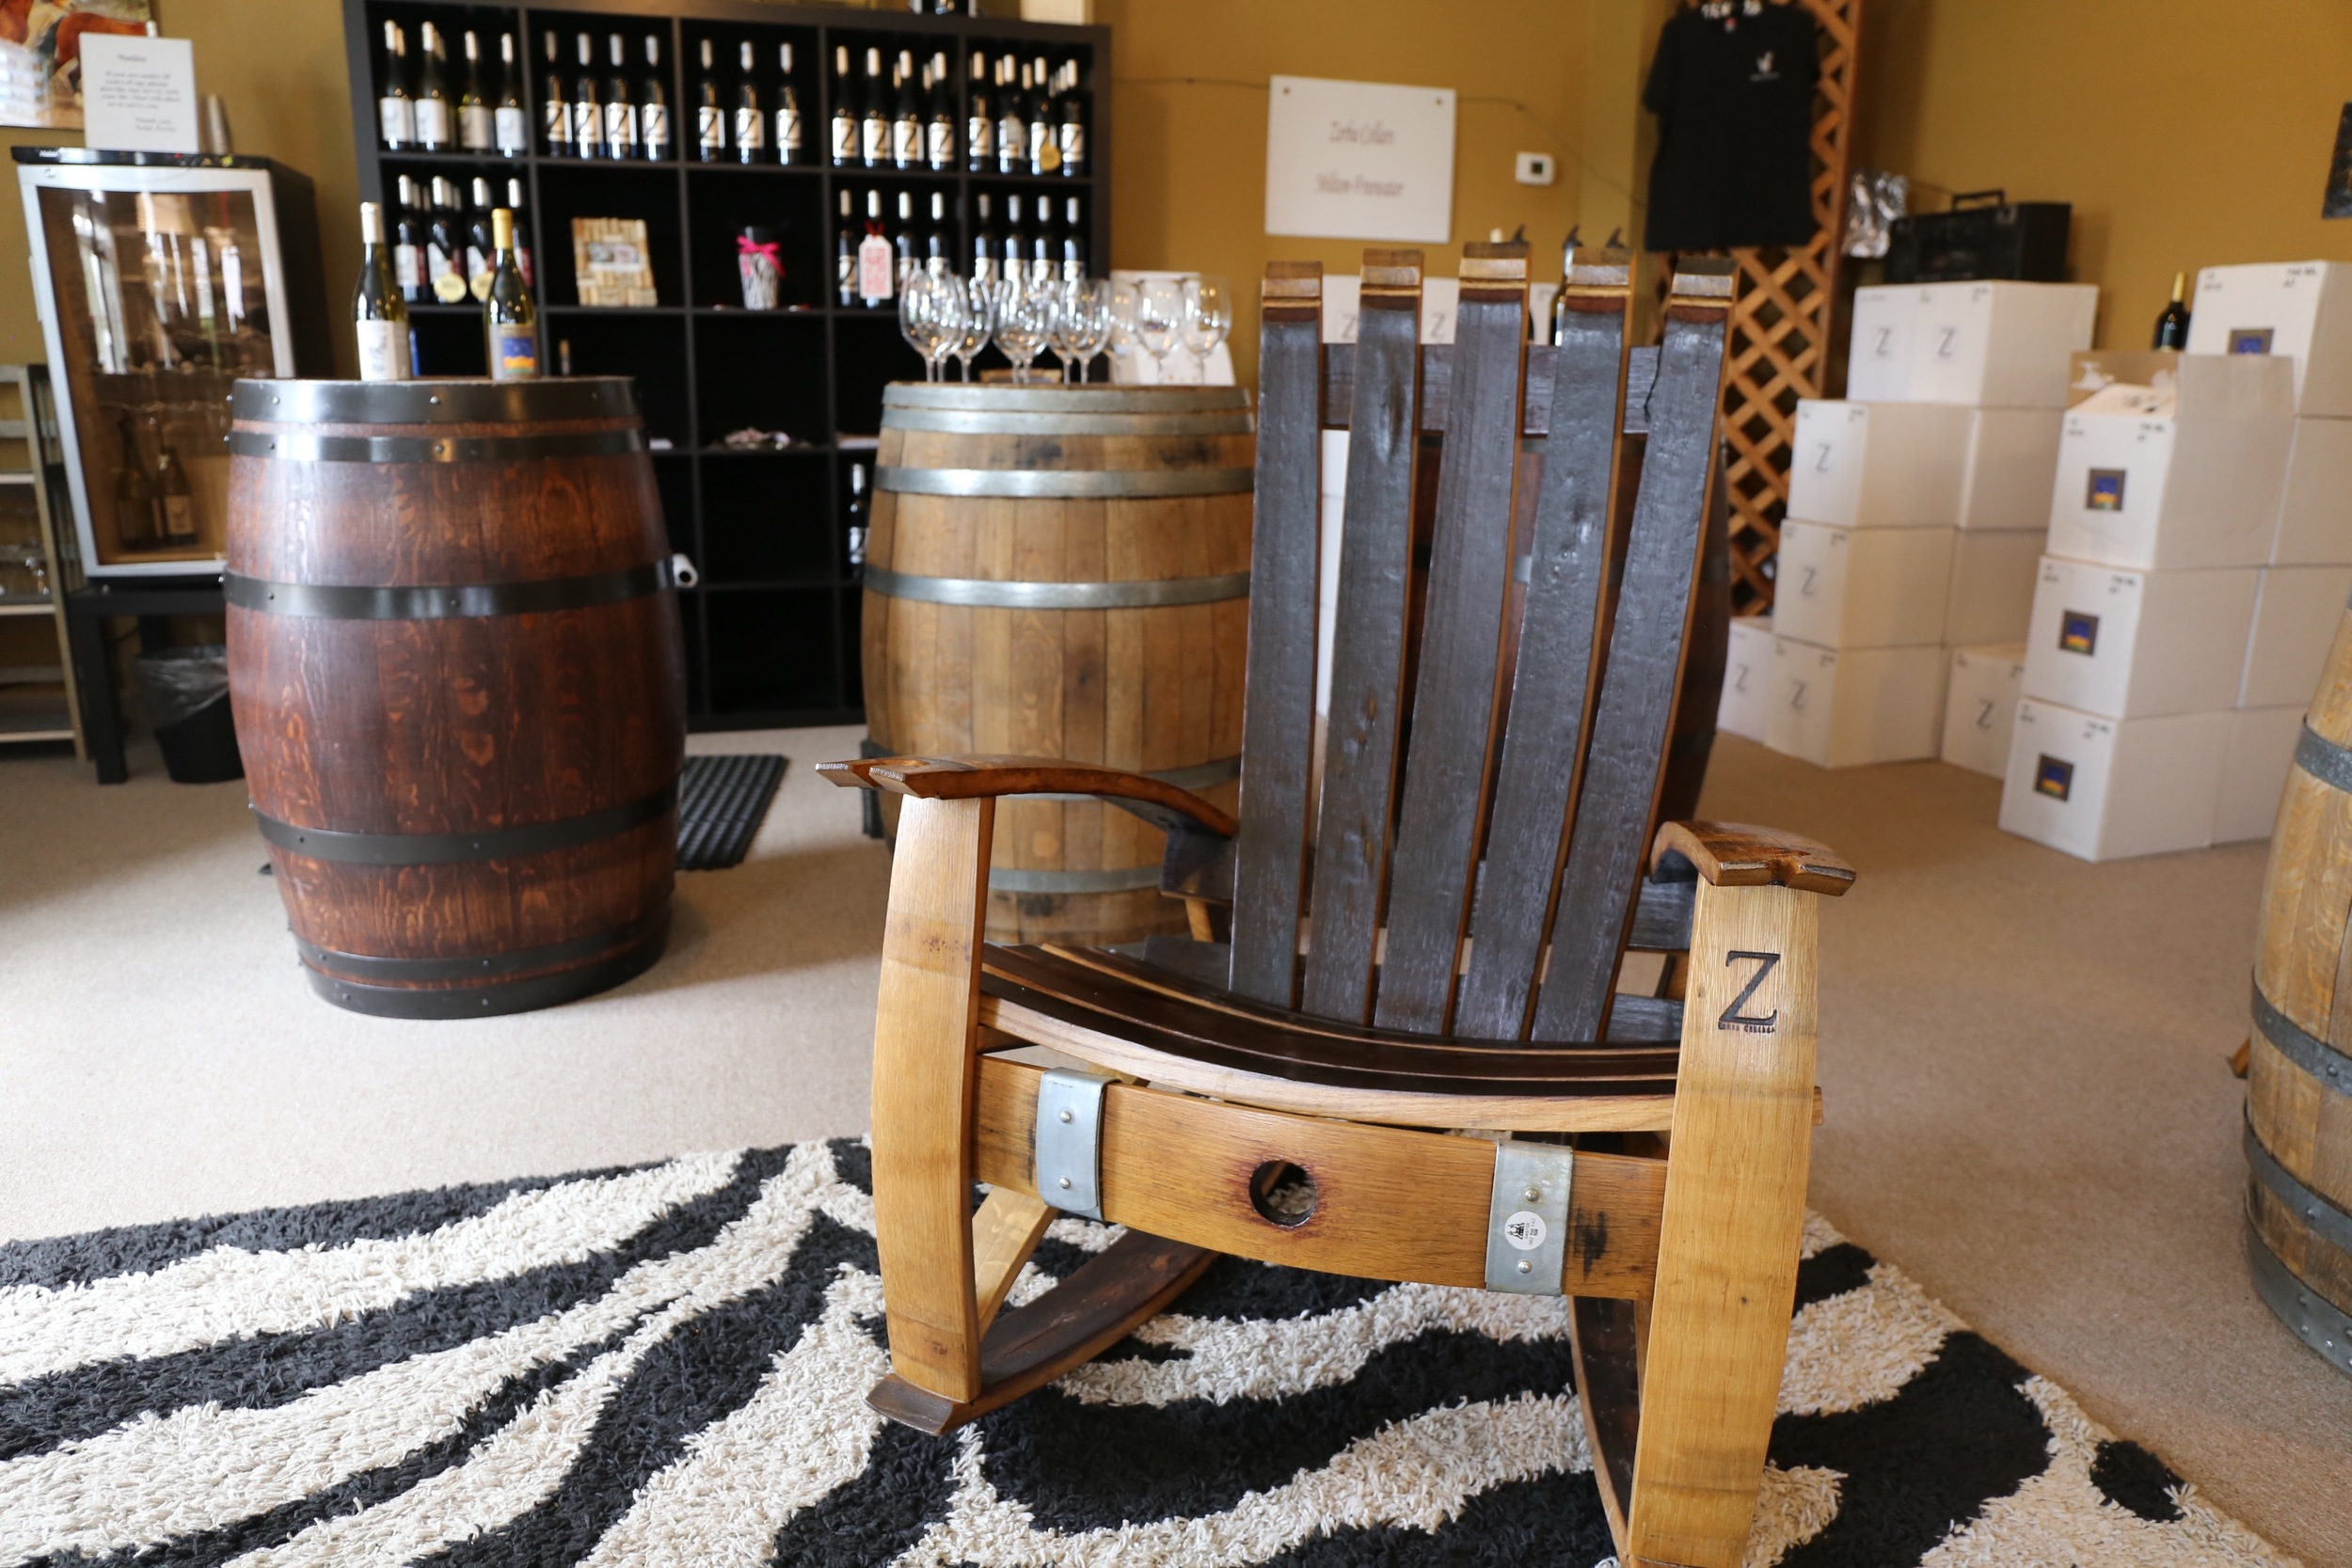 Oak barrel rockers crafted for Zerba Cellars at their Dundee Tasting Room